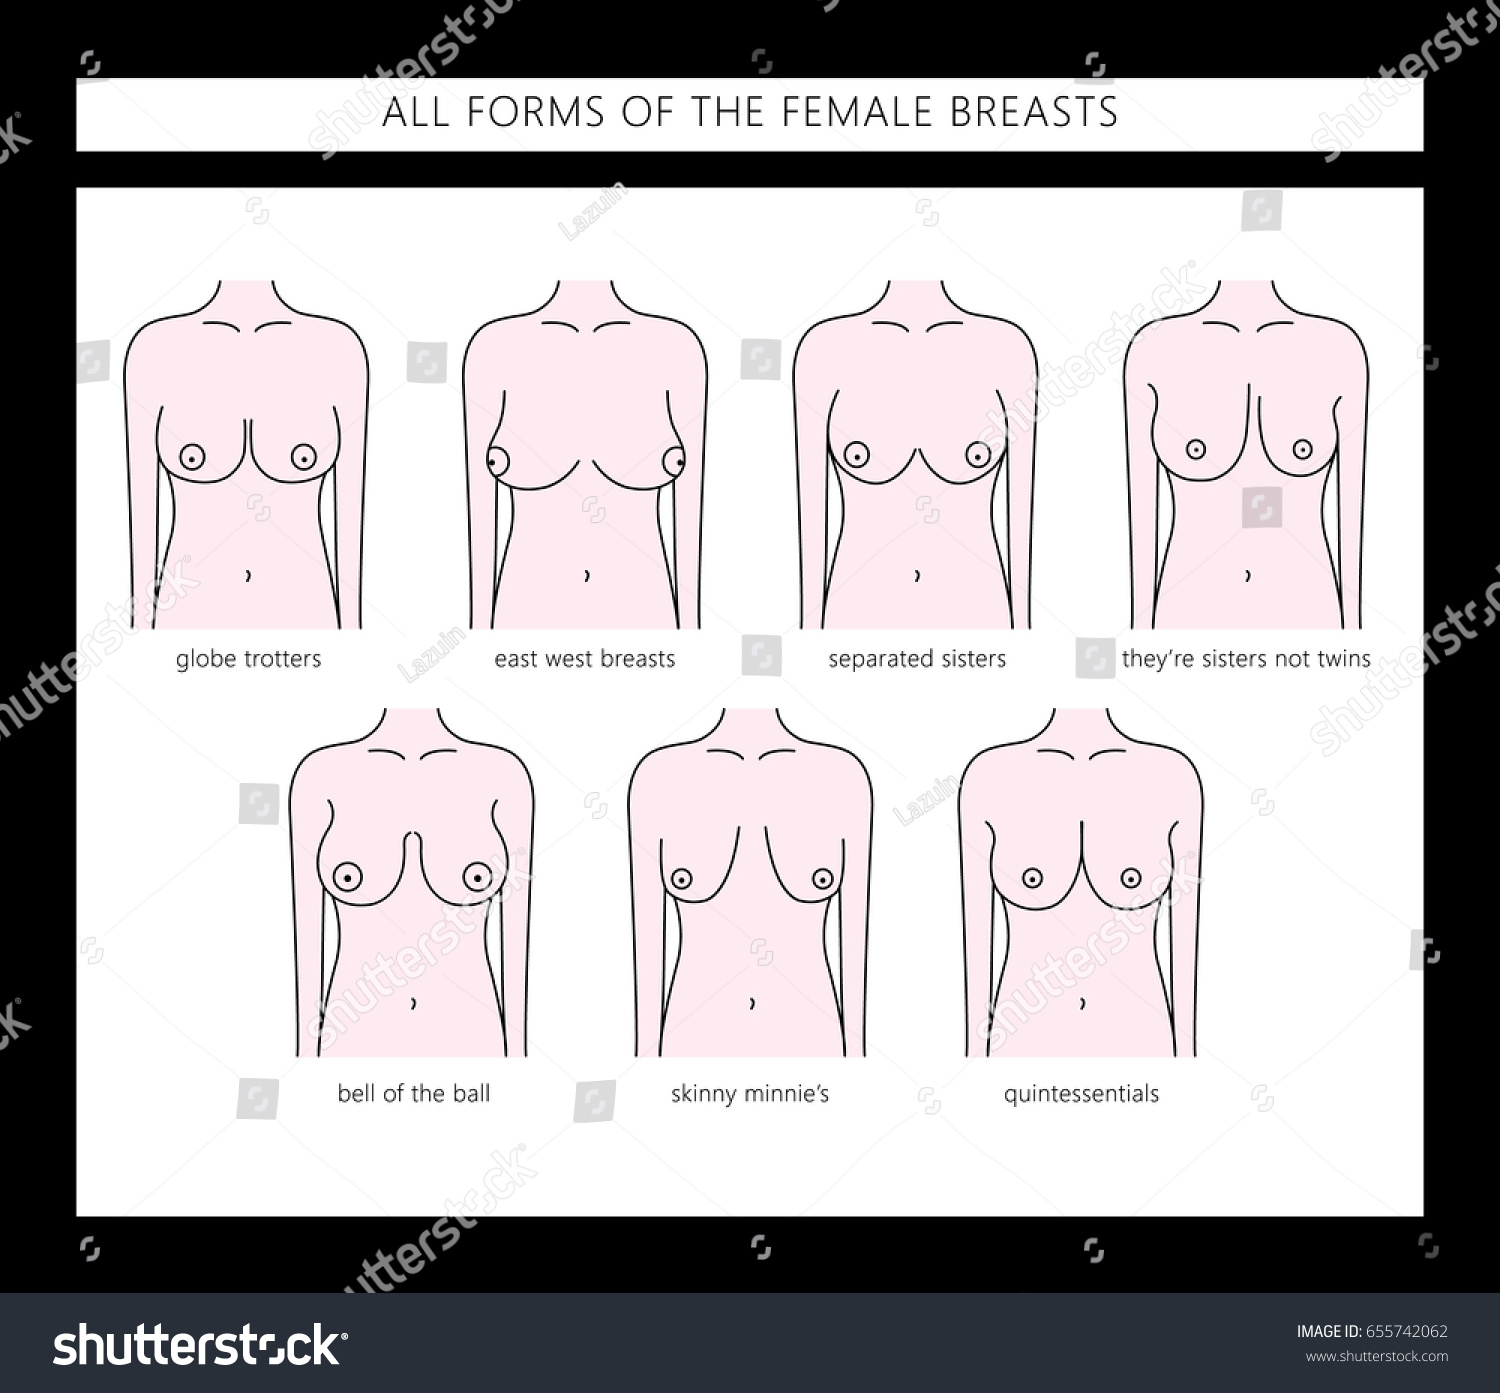 Breast Changes and Conditions - National Cancer